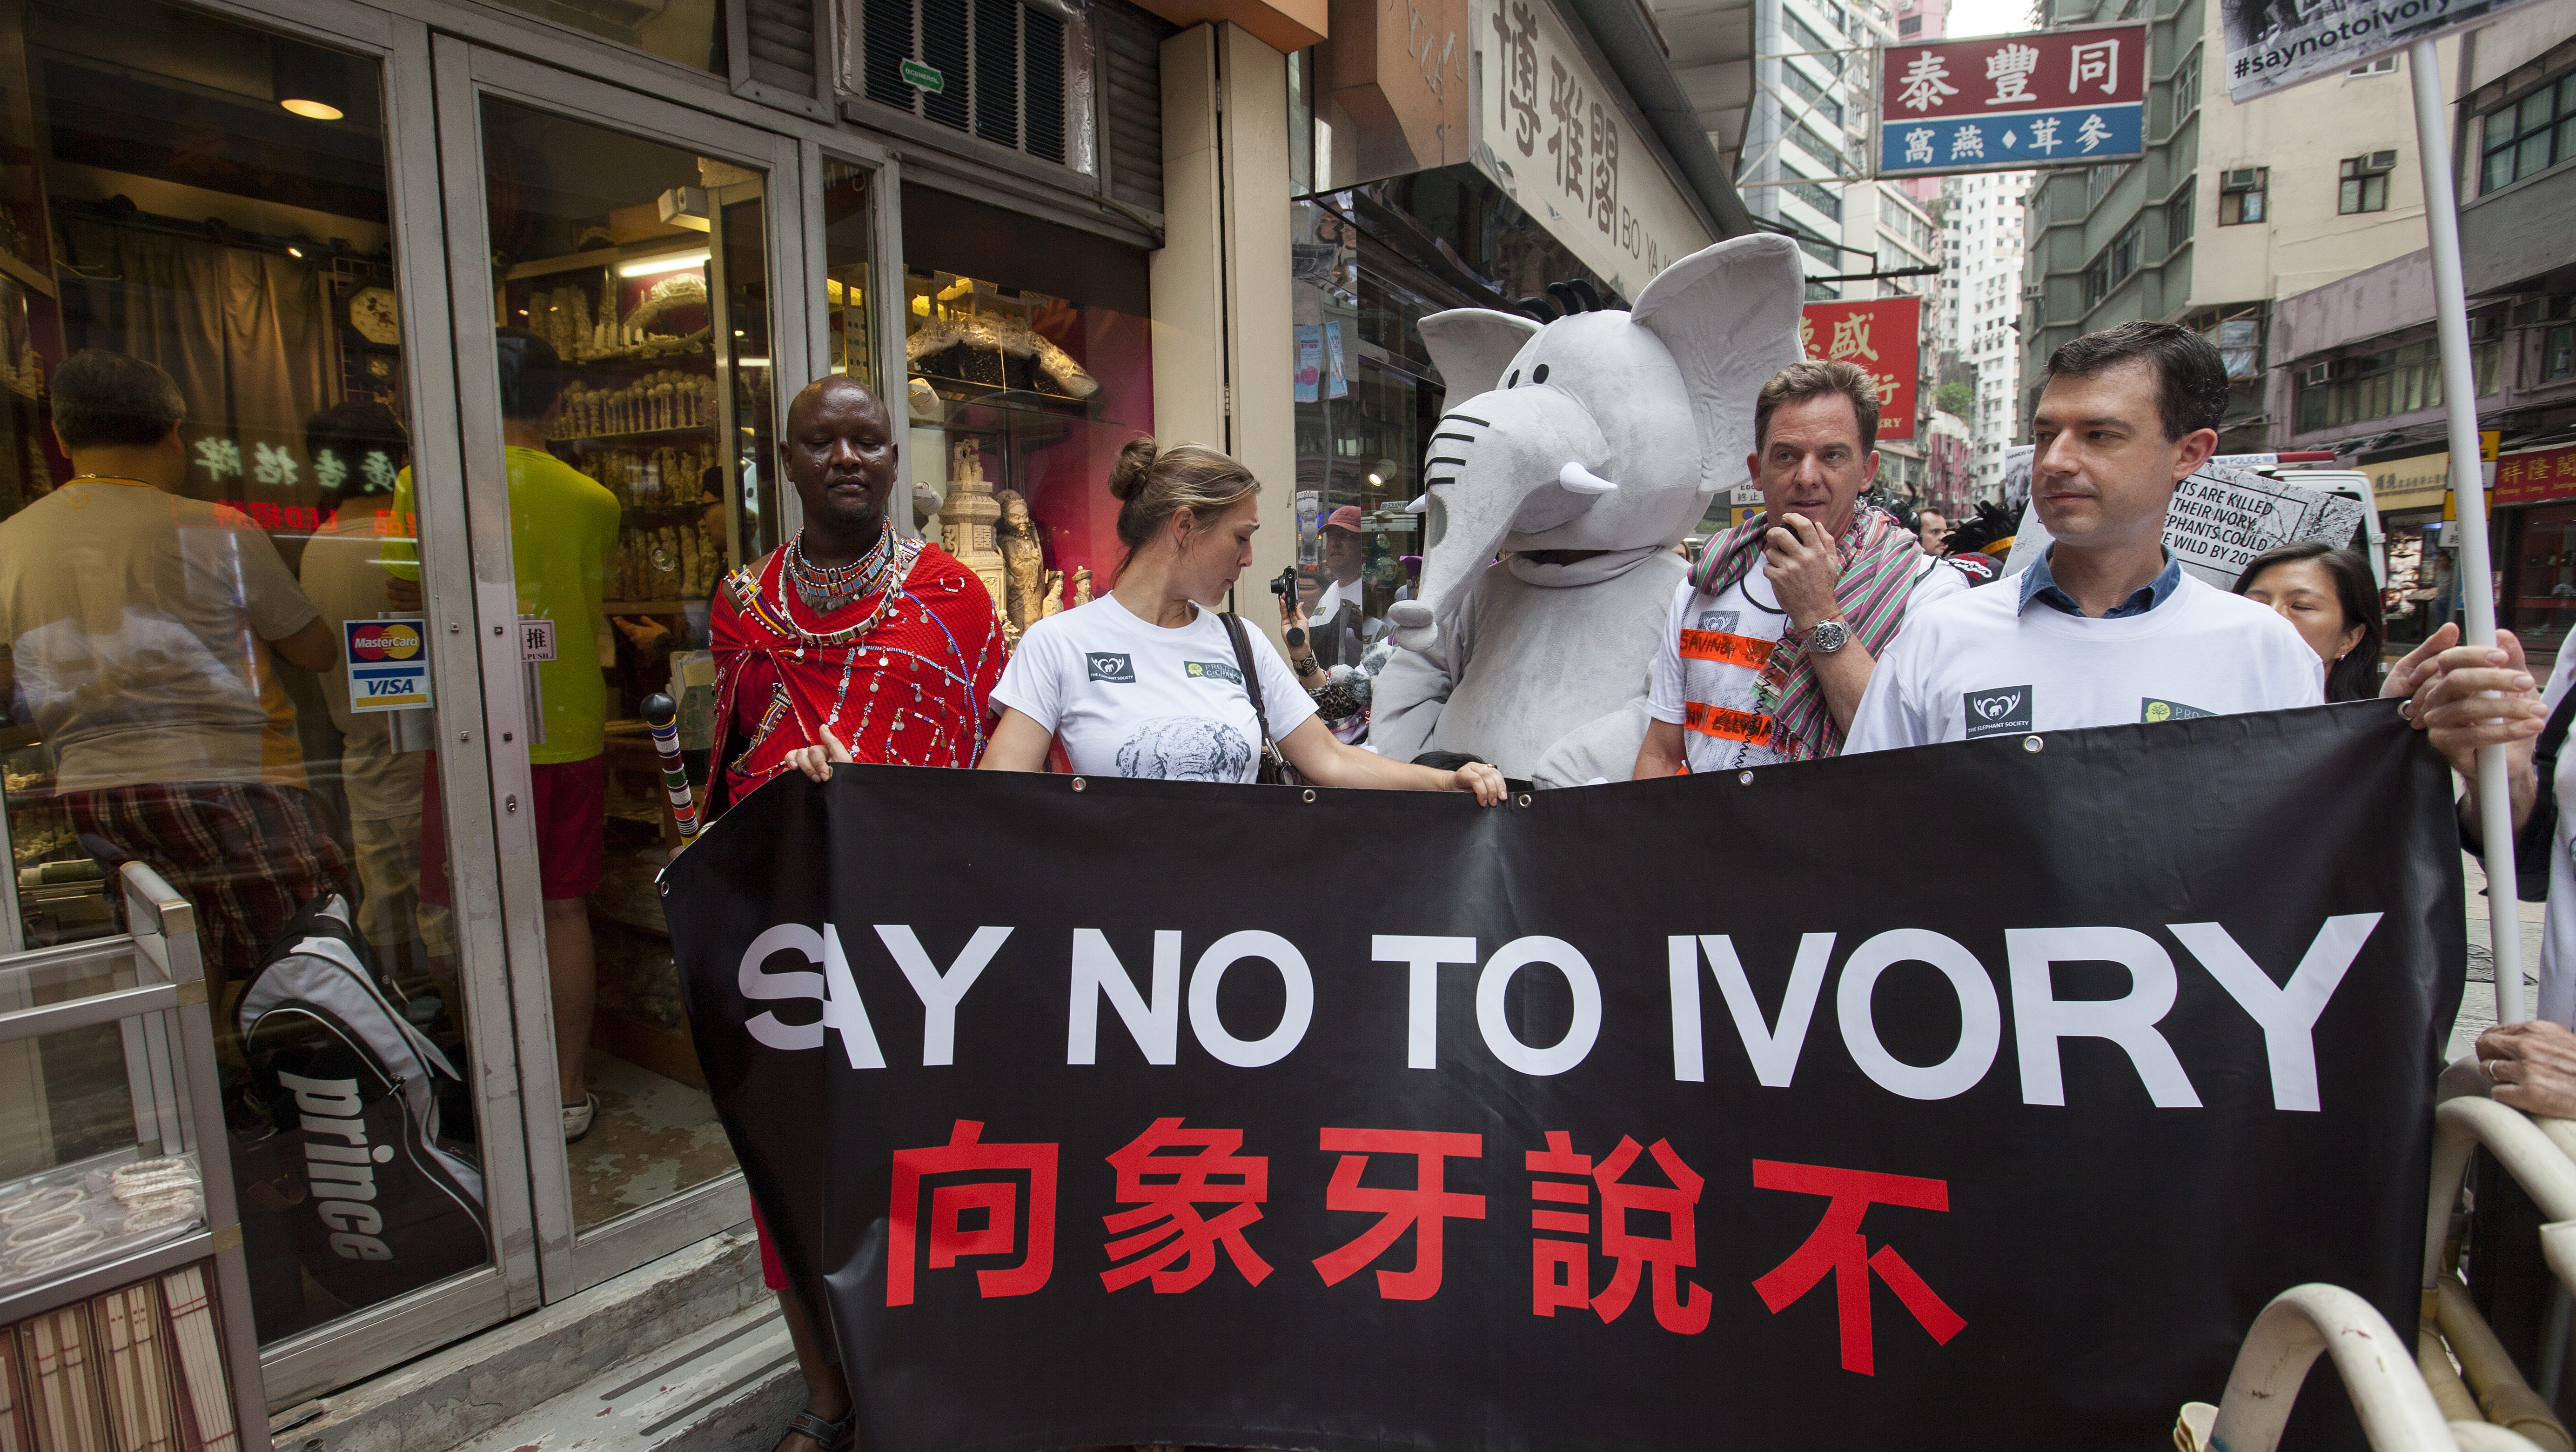 Activists from Project C:CHANGE and The Elephant Society take part in a 'Maasai March' ban ivory trade protest through the streets of Hong Kong's main ivory trading district of Sheung Wan, Hong Kong, China, 21 November 2015. The activists are calling on the Hong Kong government to ban the city's domestic ivory trade, which they say is a hub for the illegal laundering of ivory tusks from recently poached African elephants into Hong Kong's legal ivory market. A highlight of the 'Maasai March' was the presence of Kenyan activist Daniel Ole Tembo, a Masaai warrior and Predator Protection Programme Coordinator for Big Life Foundation, a Kenya-based NGO that is fighting illegal poaching and habitat destruction. EPA/ALEX HOFFORD